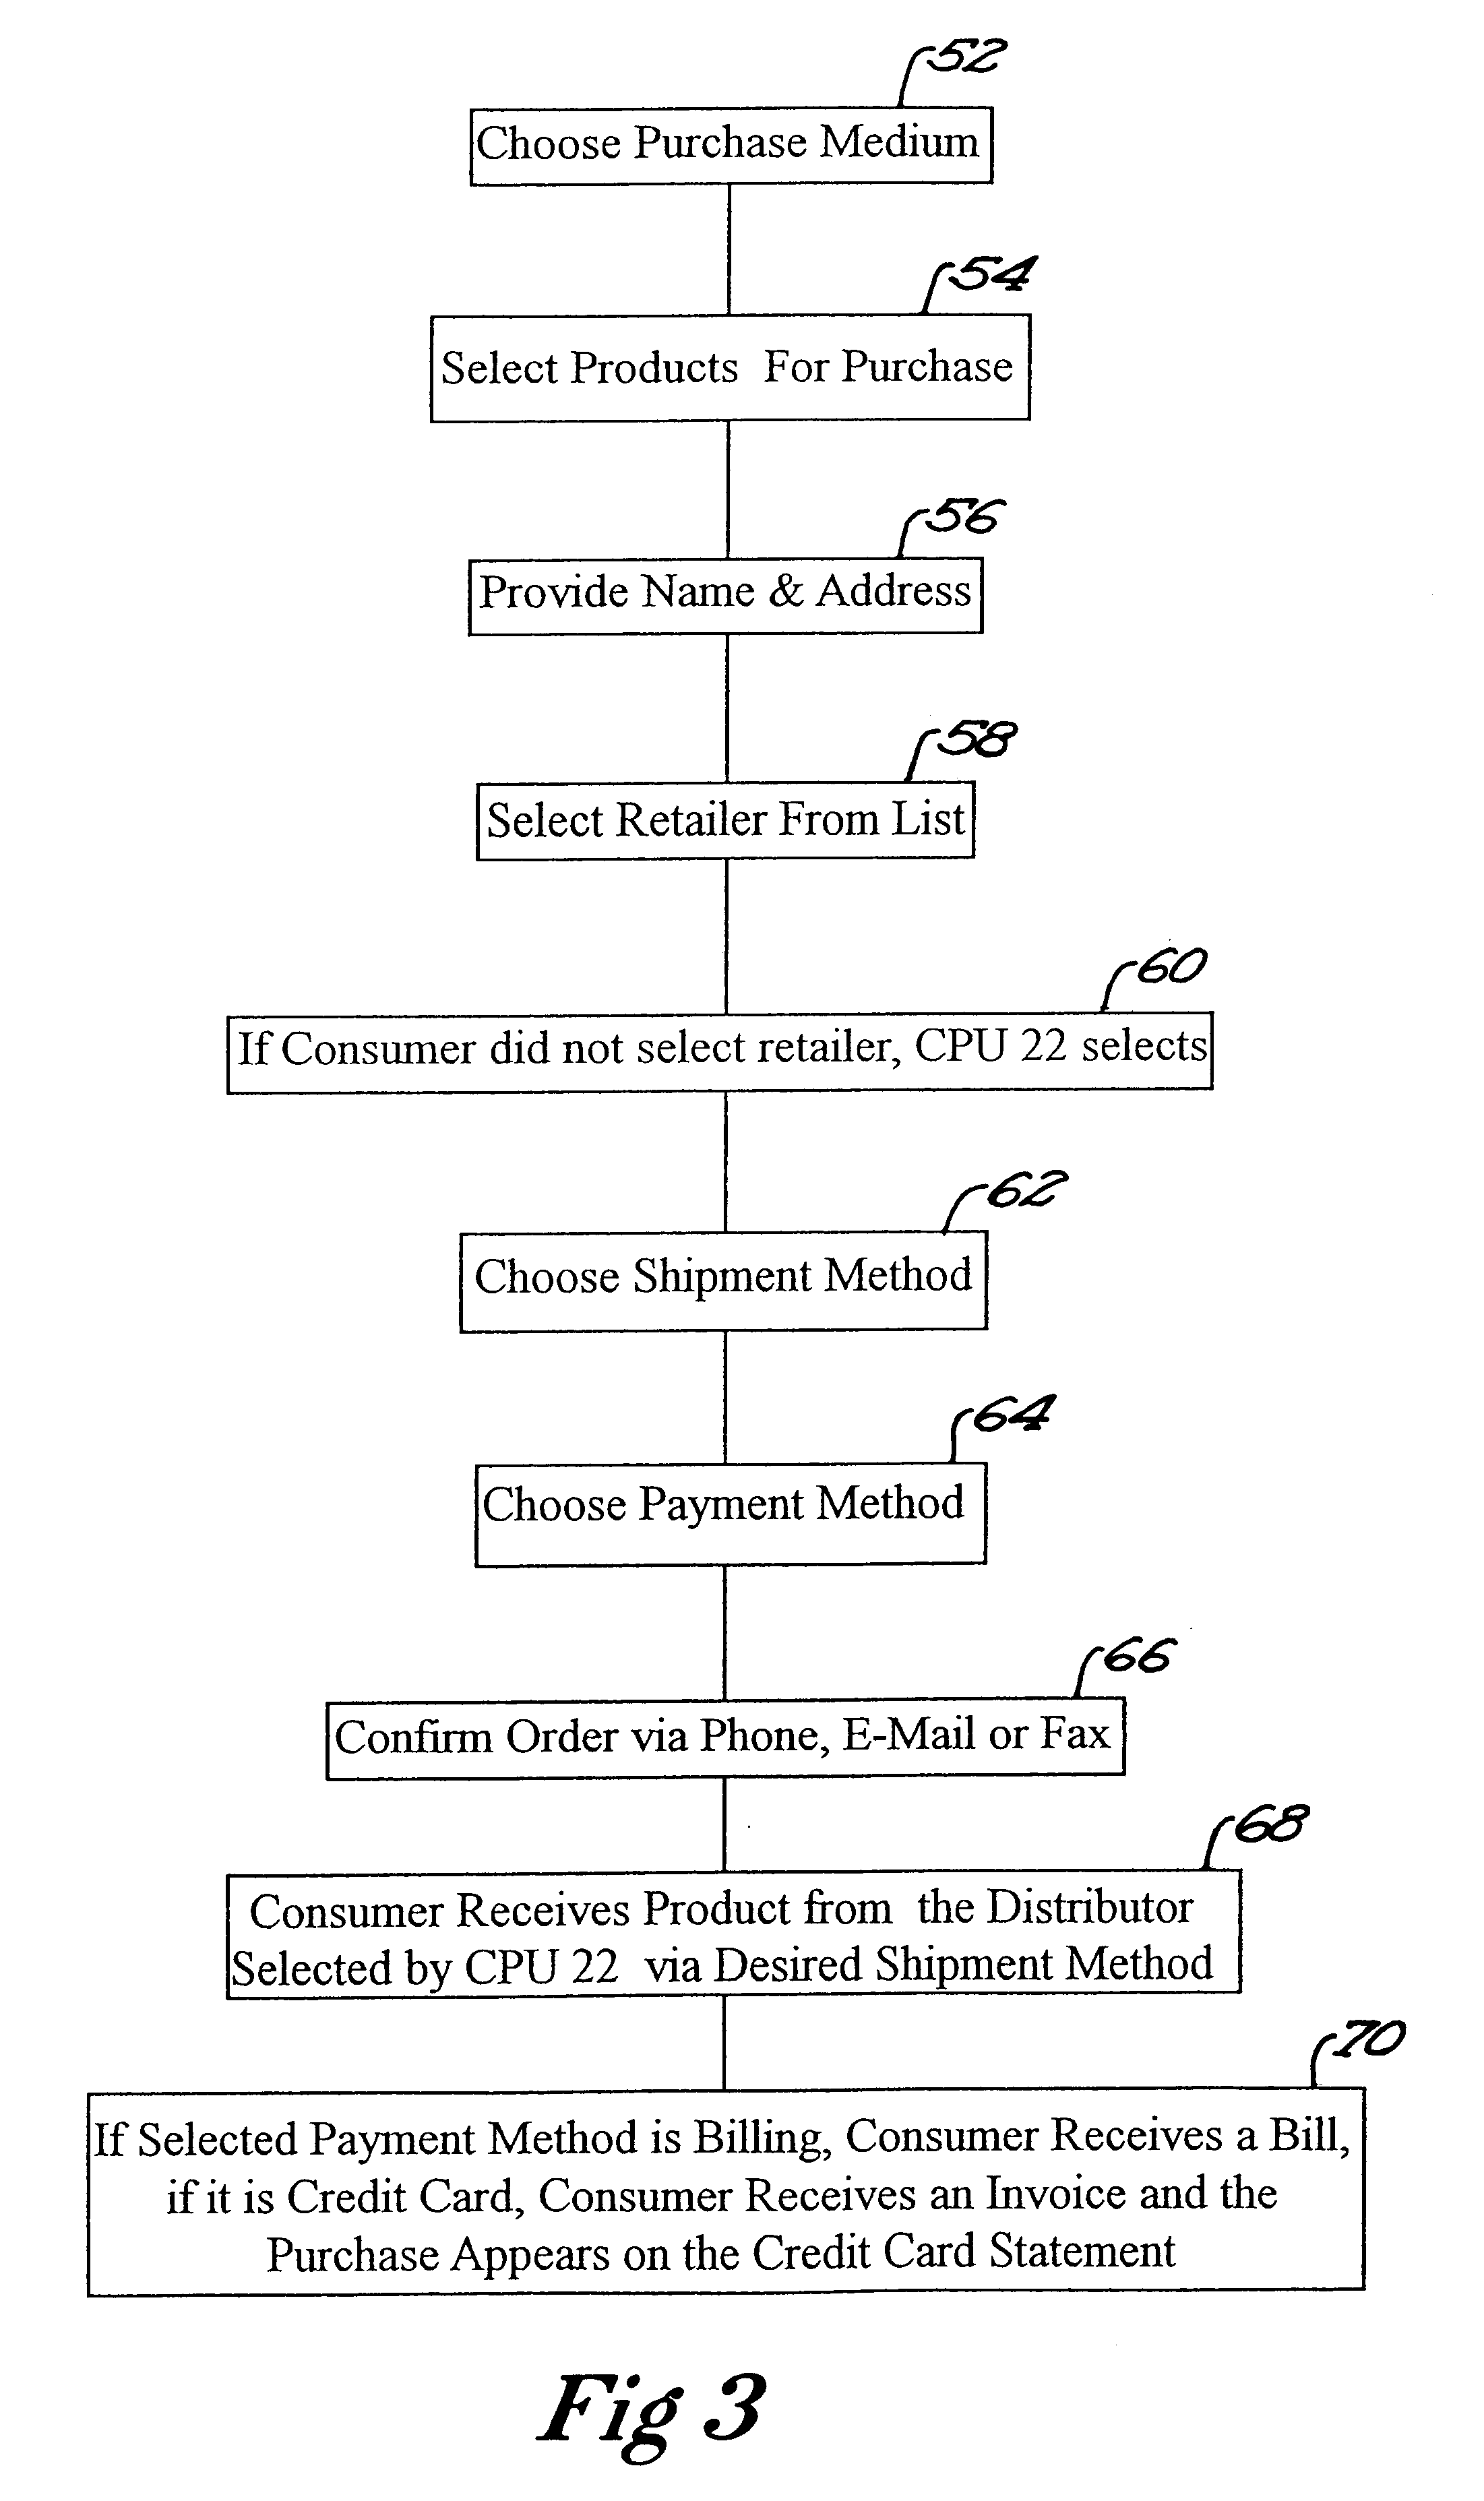 Receipt Paper Walmart Excel Patent Us  Computer Facilitated Product Selling System  Copy Of Receipt Excel with Send Invoice For Payment Patent Drawing Employee Handbook Receipt